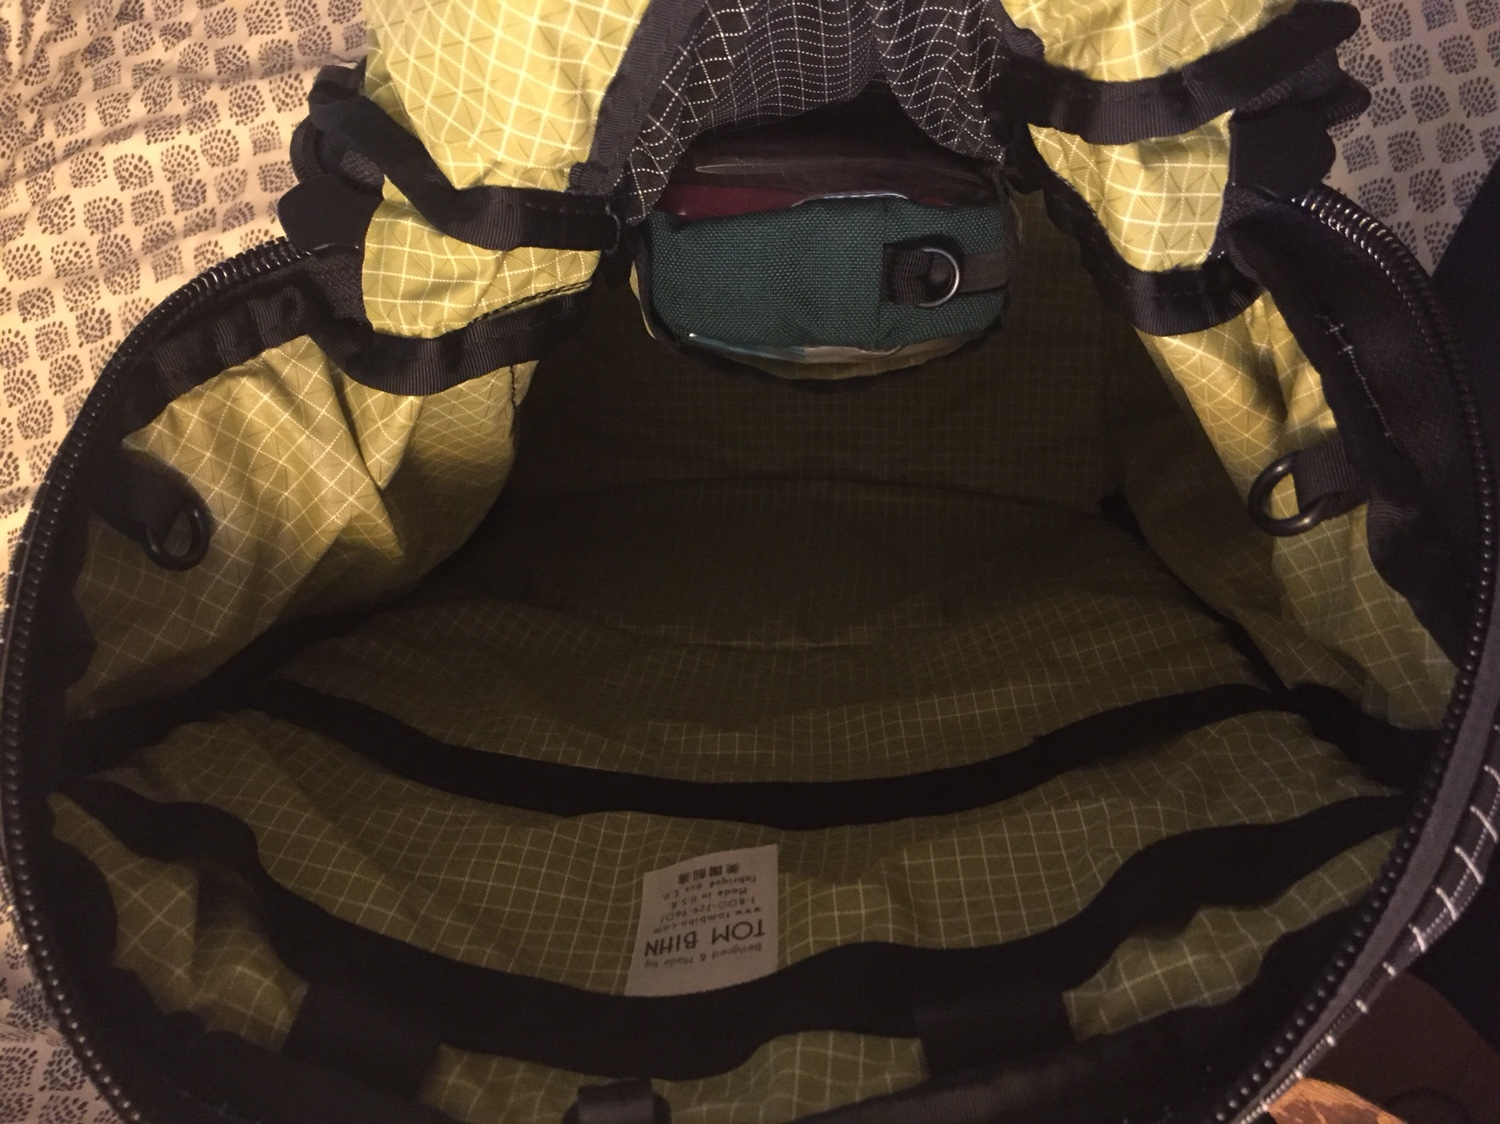 12b68c9db2 Share Your Bag Hacks Creative Uses  Archive  - TOM BIHN Forums